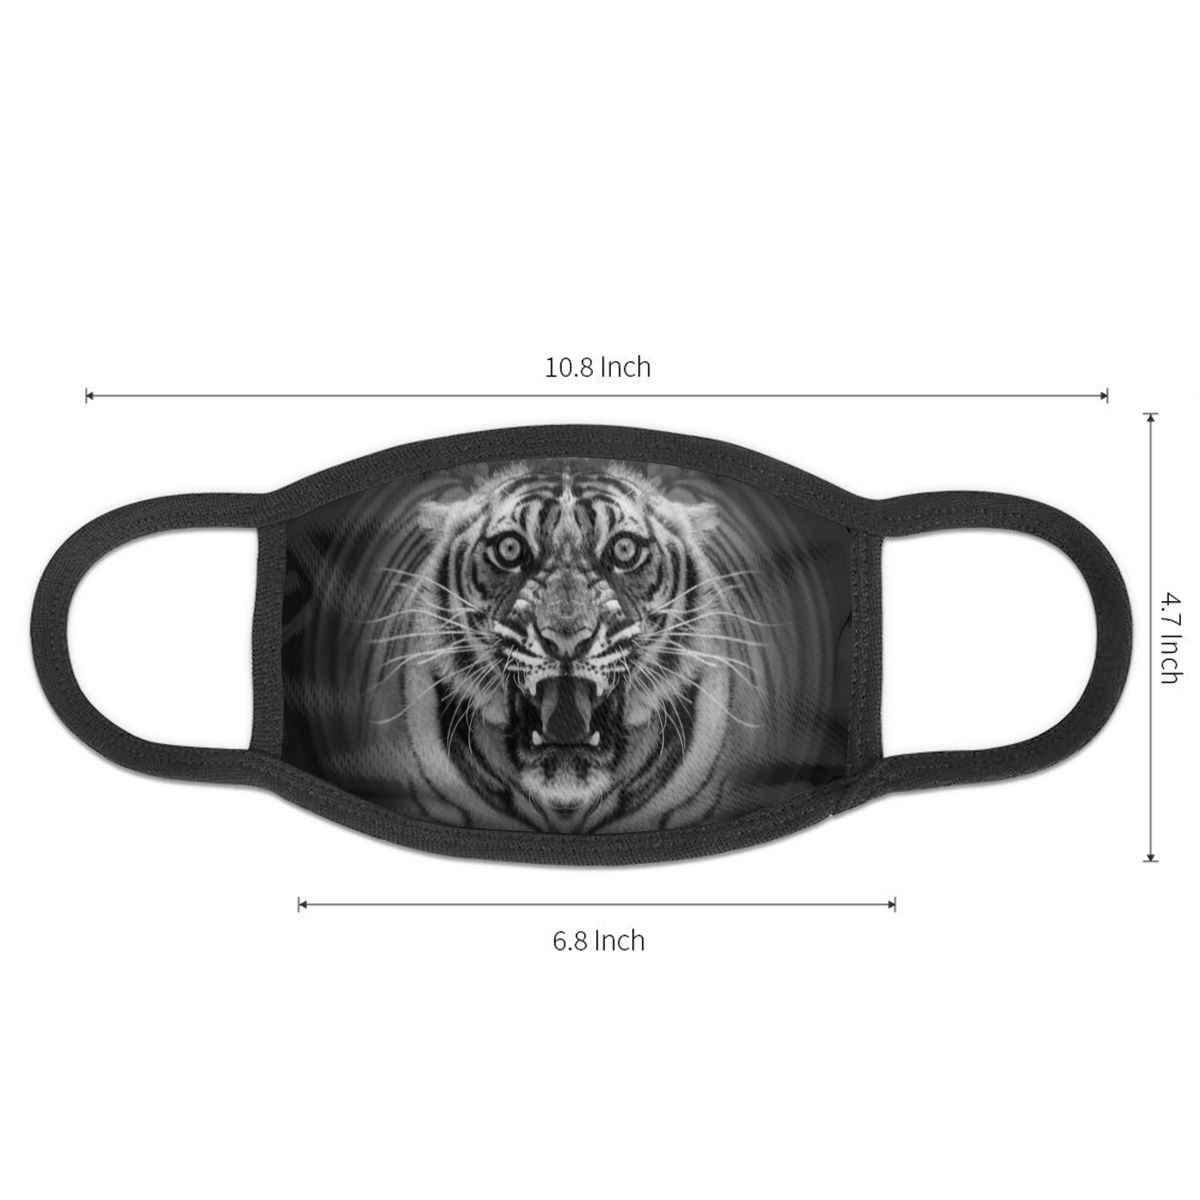 NOISYDESIGNS Fashion Mask Unisex Anti Dust Mouth Mask Cool Tiger Design Face Mask For Outdoor Riding Clothing Accessories